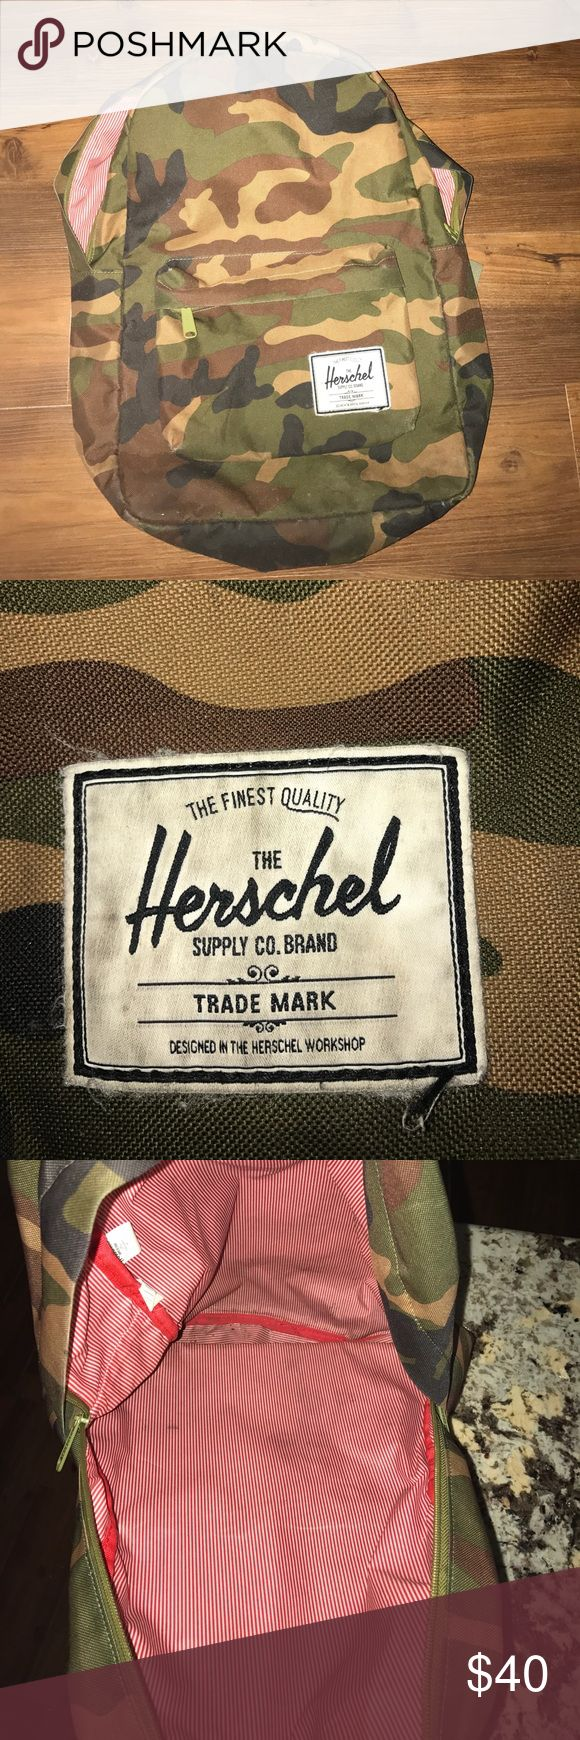 Camo Herschel Backpack Camouflage Herschel backpack. Retail price is 59.99 plus tax. It's authentic. Purchased from Zumiez 2 years ago. A little worn, but in good condition. Herschel Supply Company Bags Backpacks